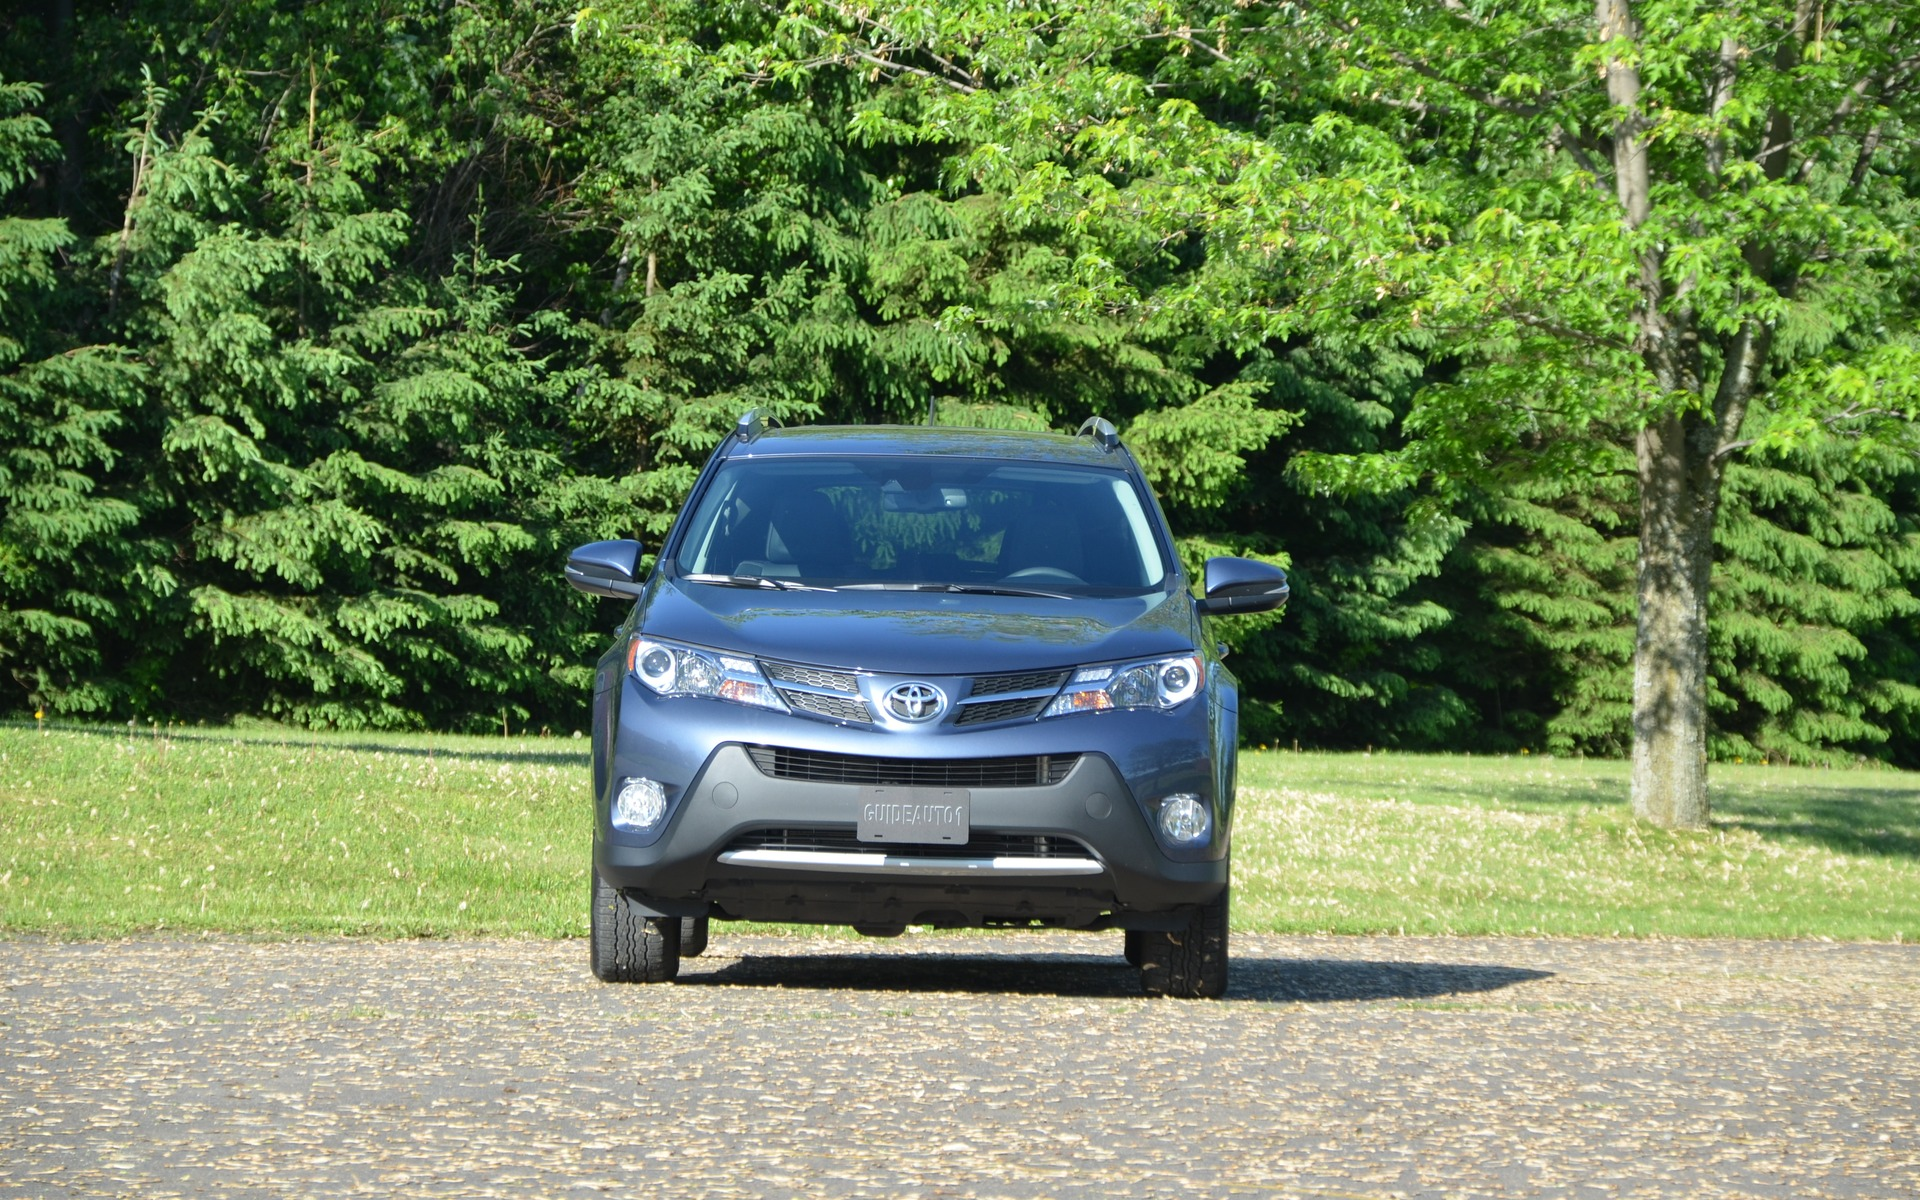 Used Rav 4 >> 2015 Toyota RAV4 XLE: Most Things To Most People - 16/20